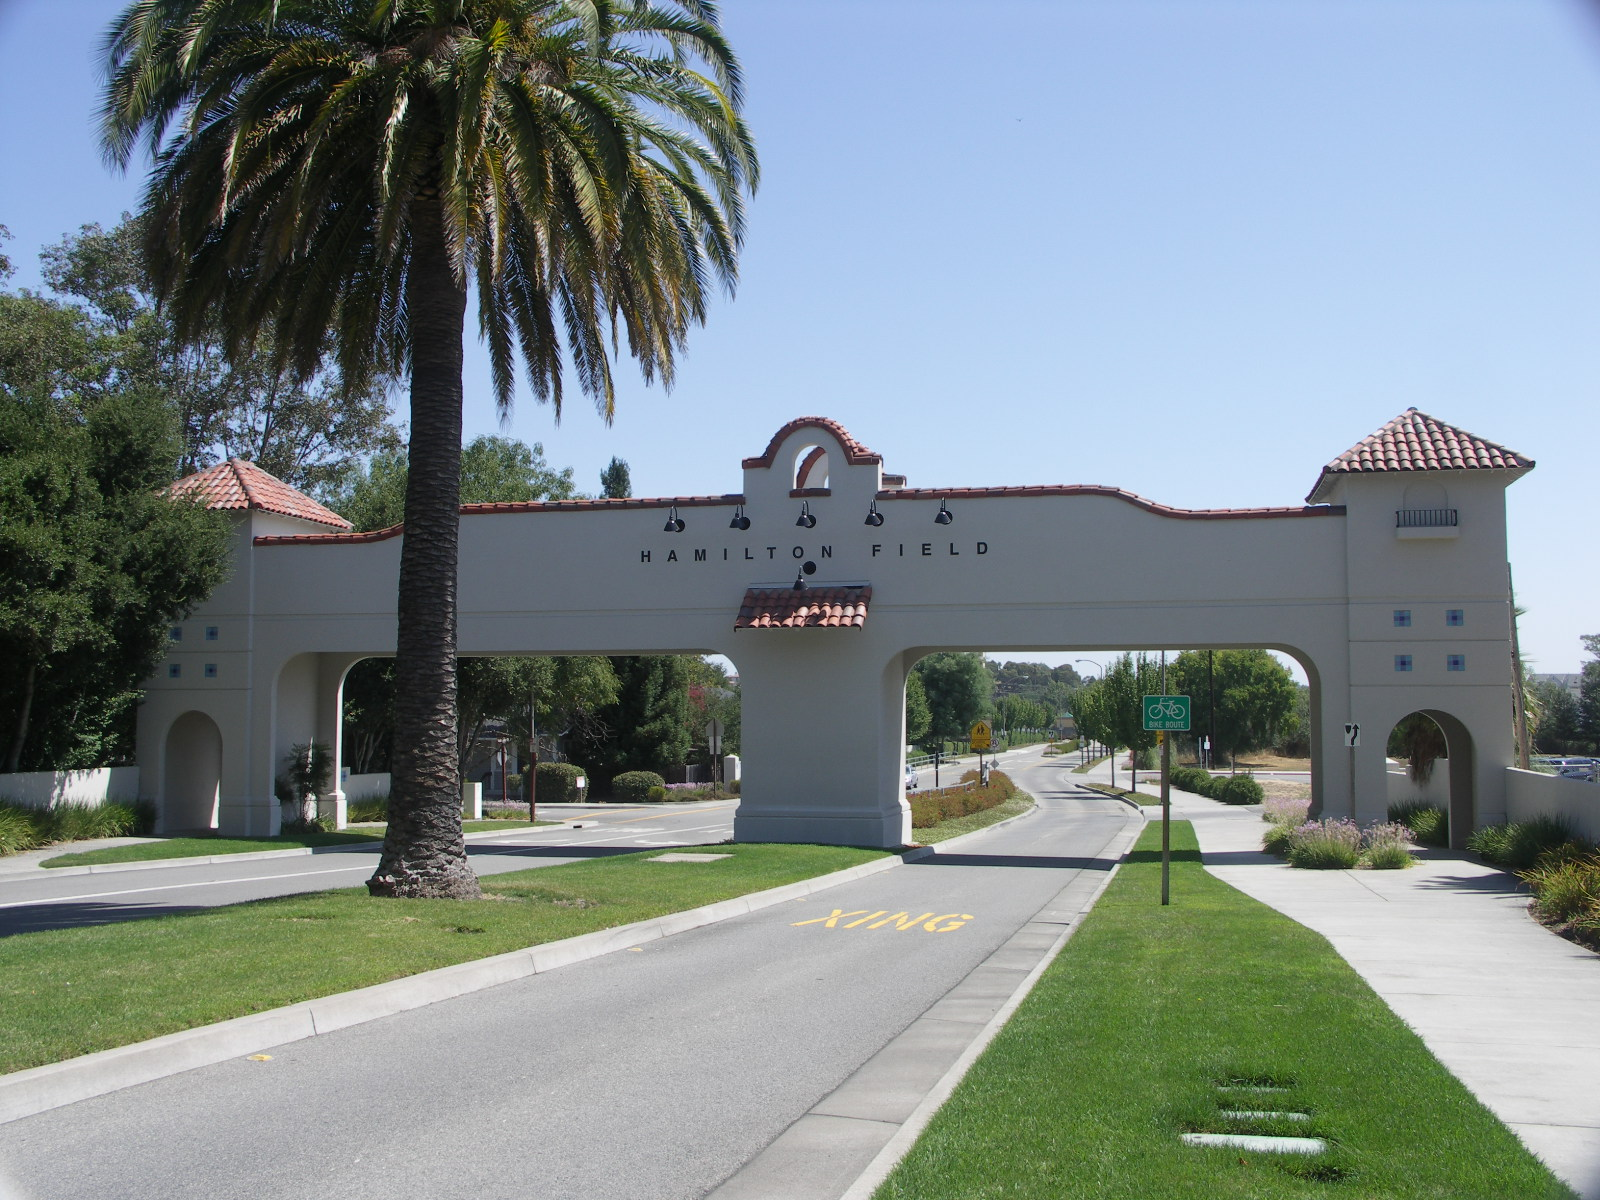 Hamilton Field Main Gate 2